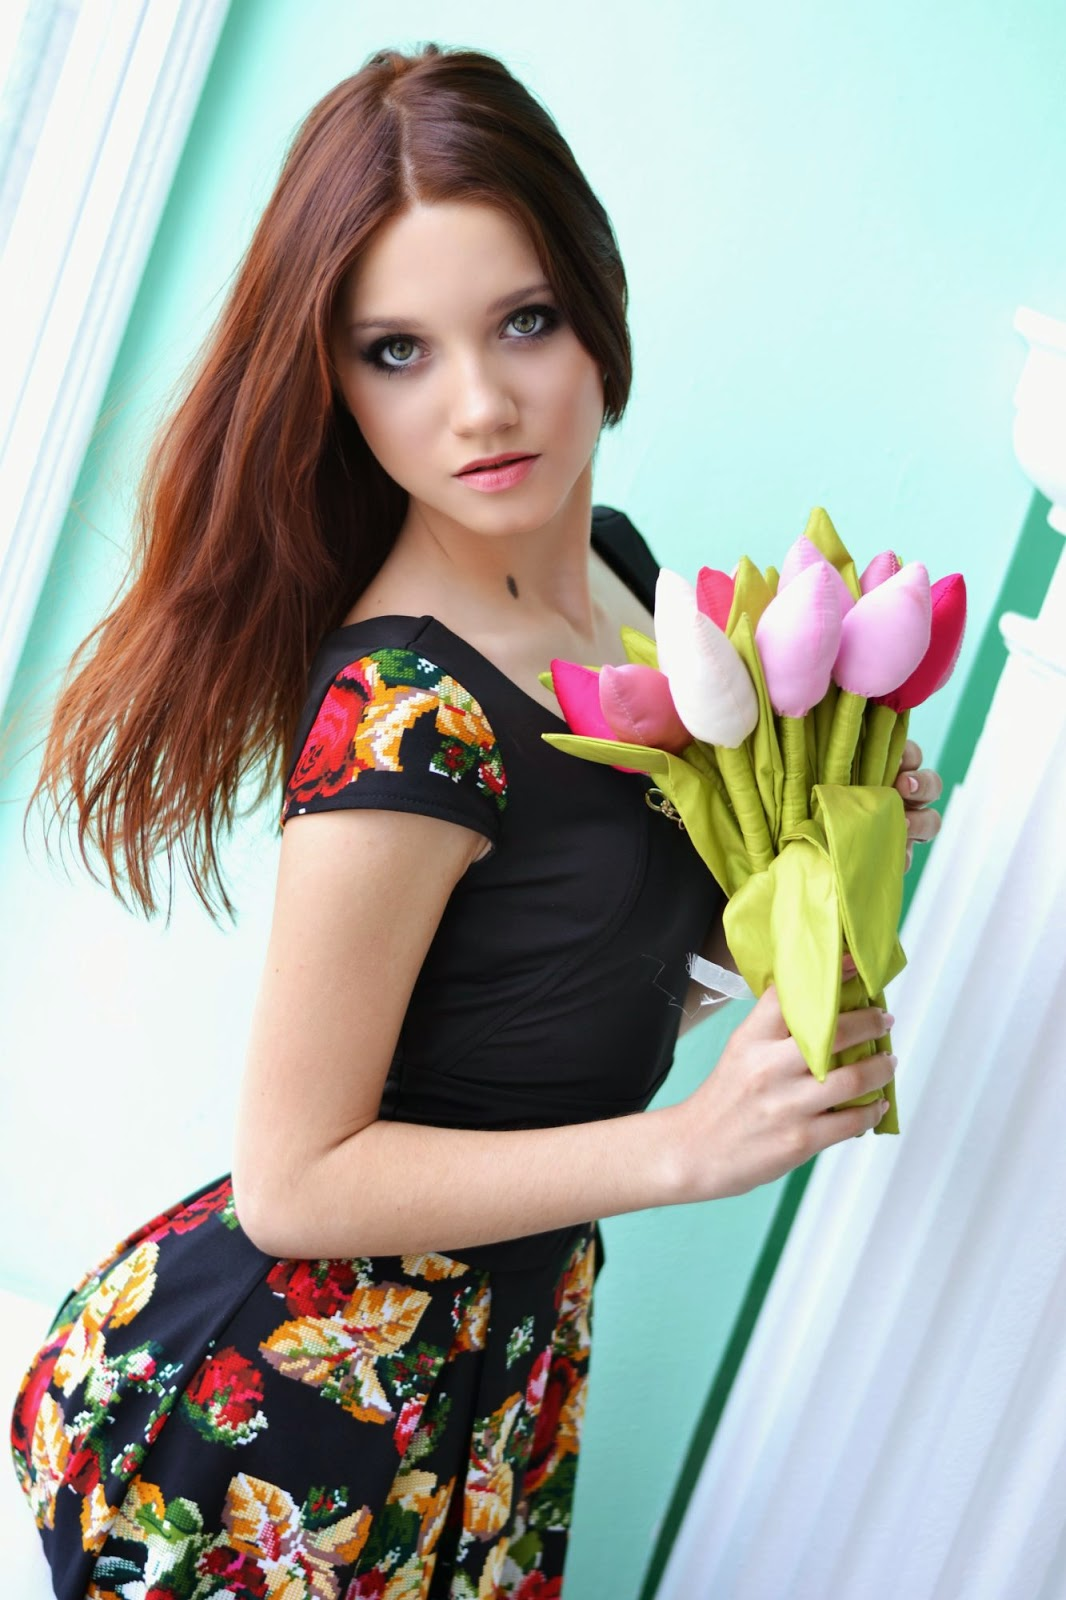 kiev chatrooms Loveawake chat rooms help you connect with kiev singles that fit your desire register today to discover the difference for 100% free online dating in kiev, ukraine with loveawakecom.